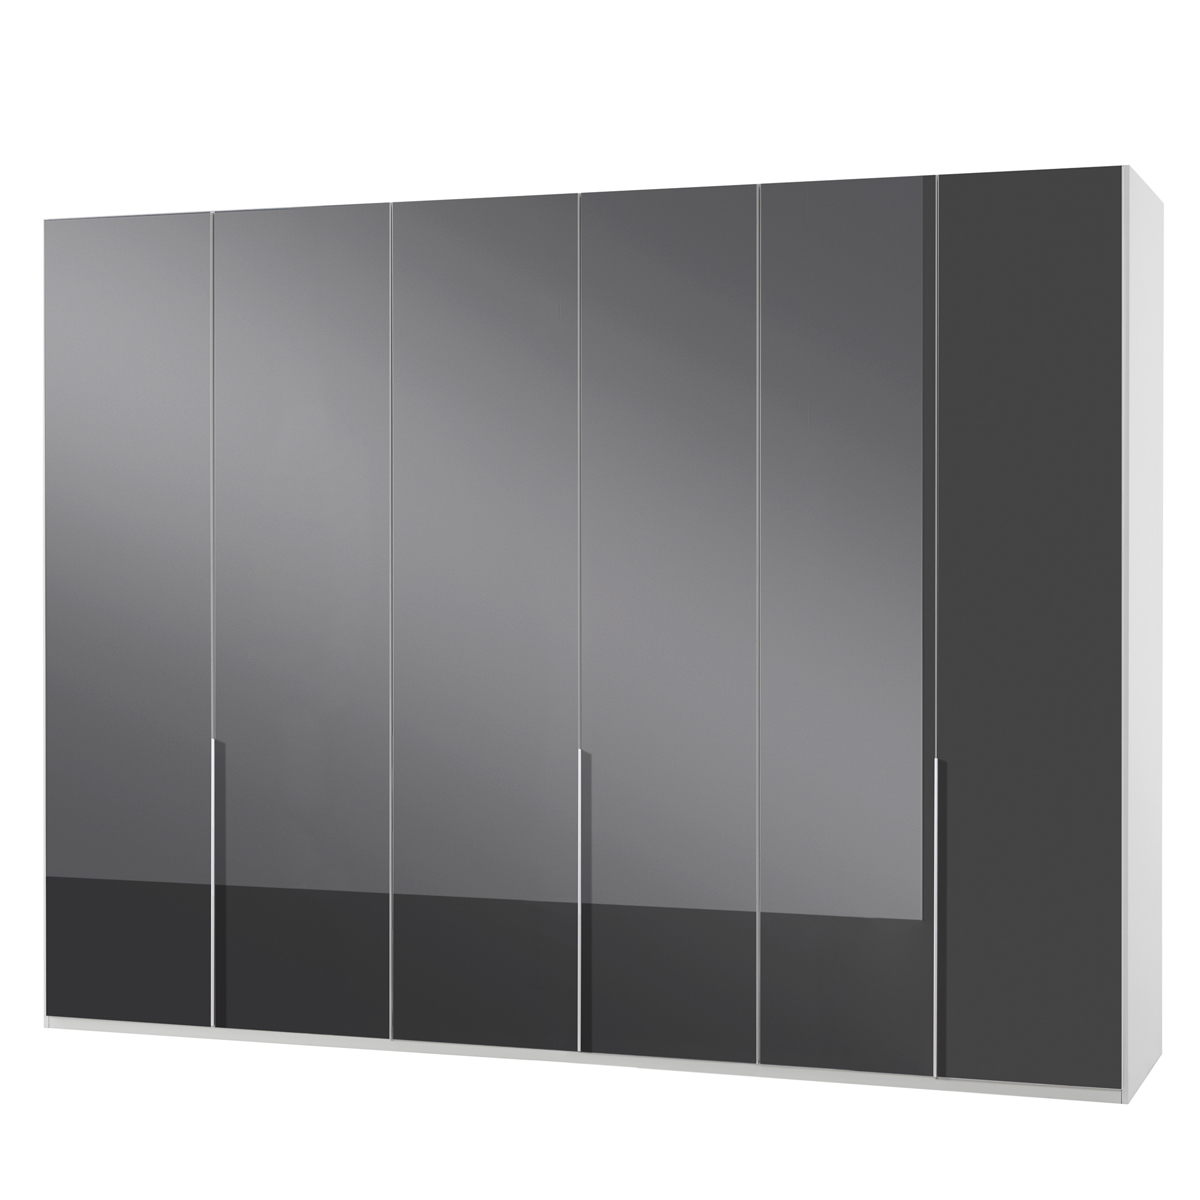 kleiderschrank new york c glas grau und alpinwei 270 schrank dreht renschrank. Black Bedroom Furniture Sets. Home Design Ideas